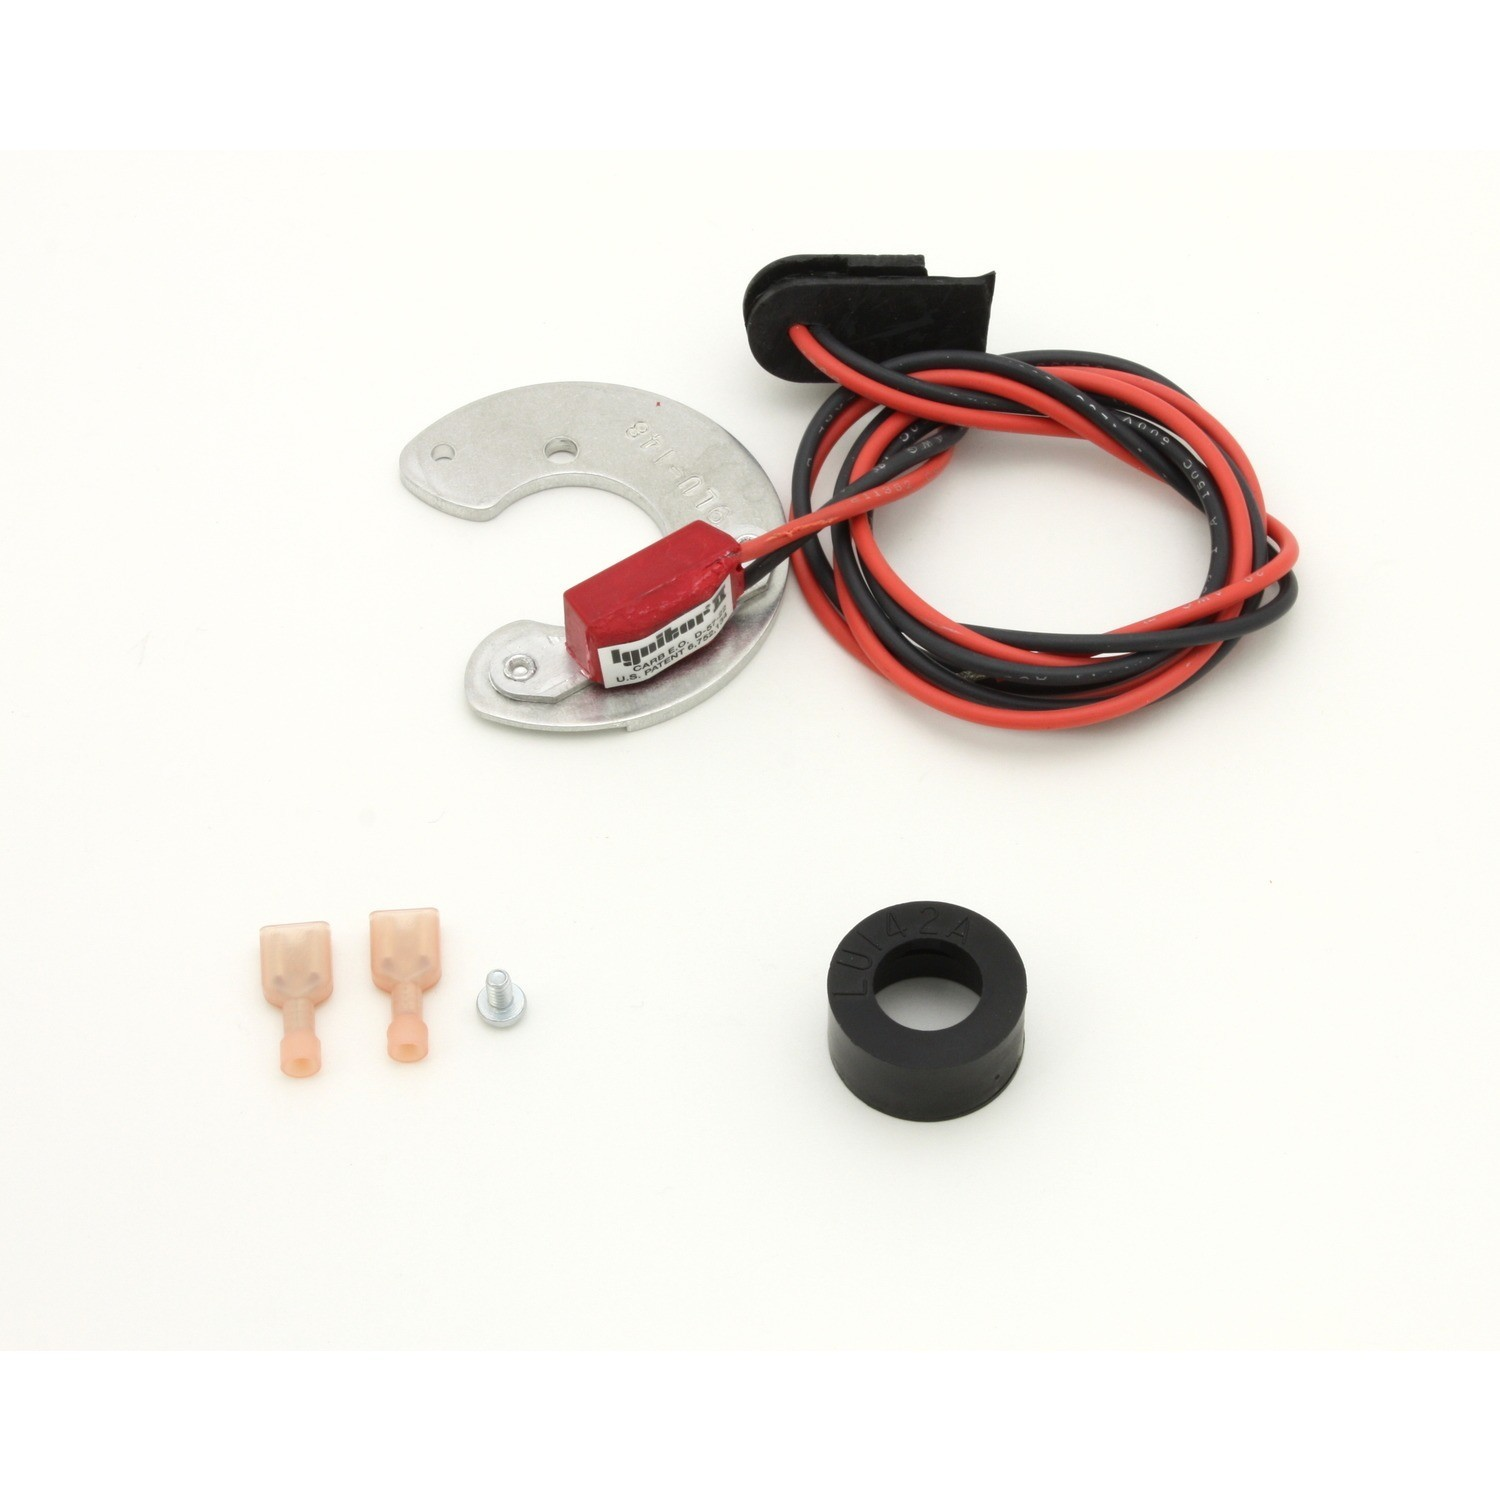 Pertronix Ignition 9LU-148 Ignition Conversion Kit, Ignitor II, Points to Electronic, Magnetic Trigger, Lucas 23D4, 4-Cylinder Distributors, Kit